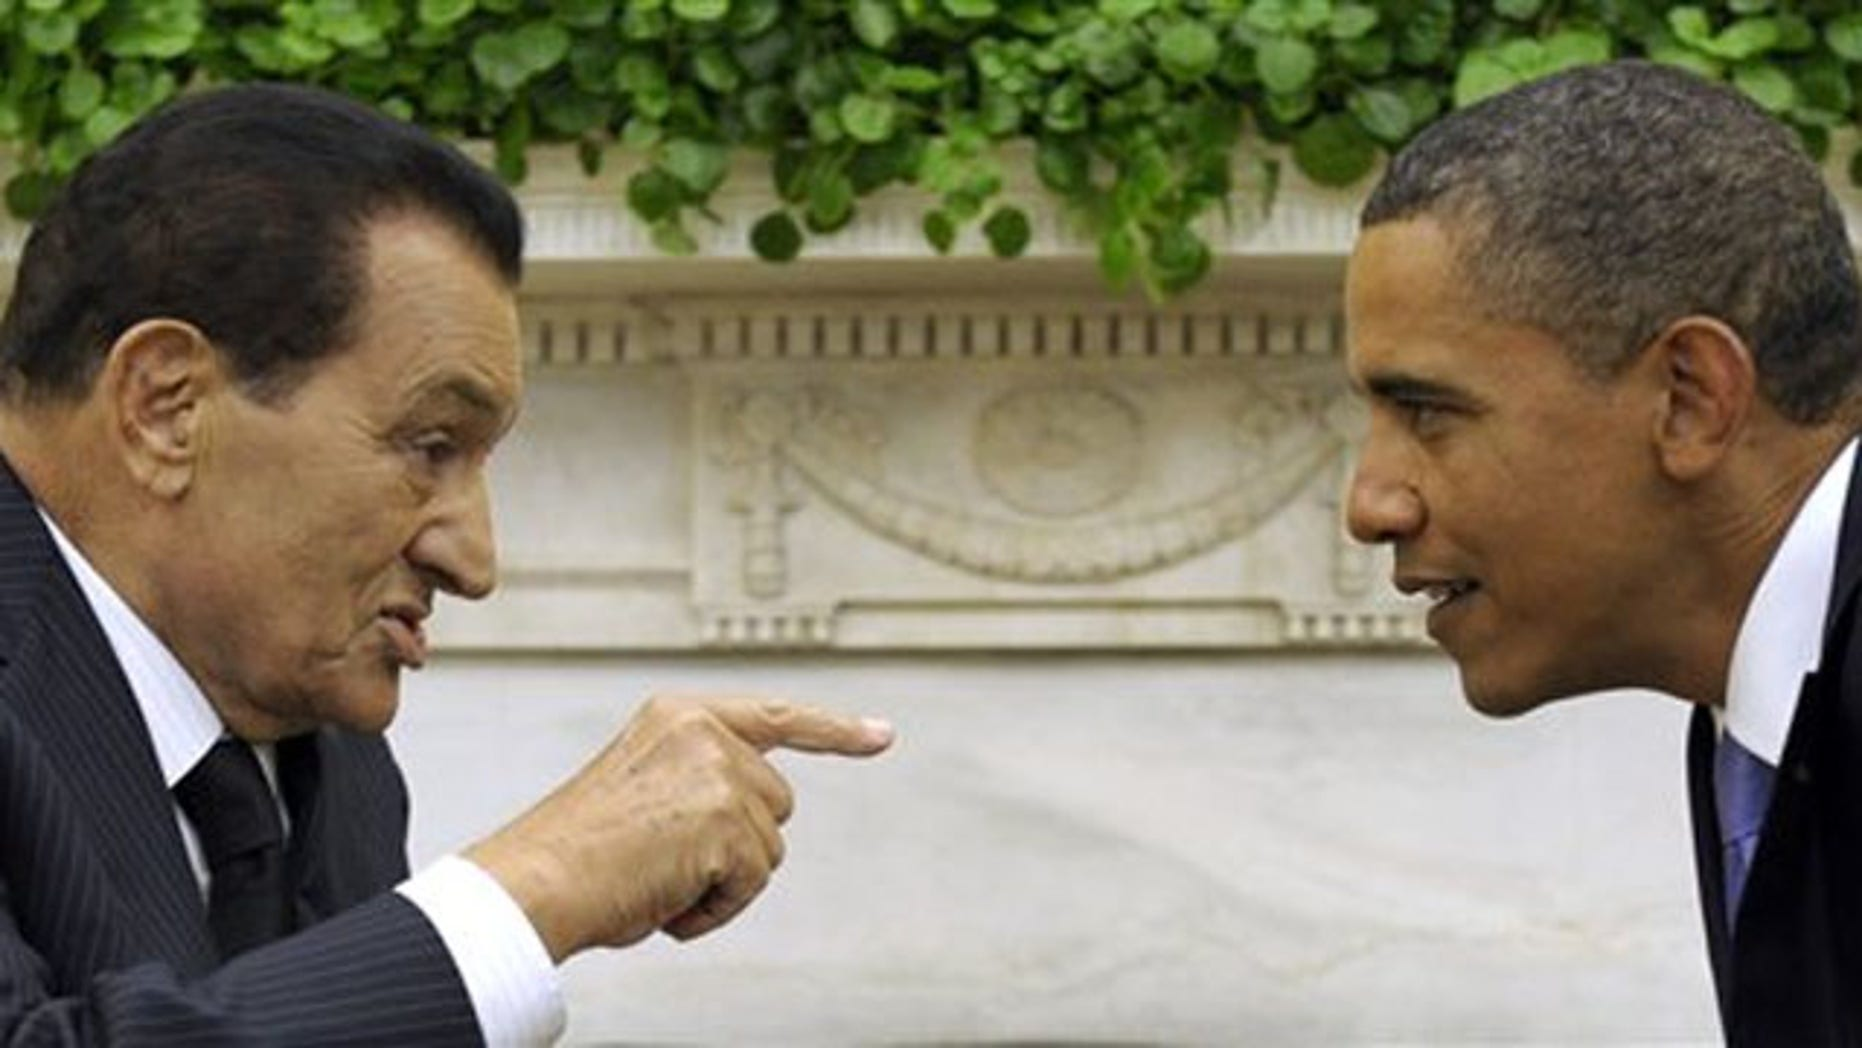 In this Sept. 1, 2010, file photo, President Obama meets with Egyptian President Hosni Mubarak, in the Oval Office of the White House in Washington.